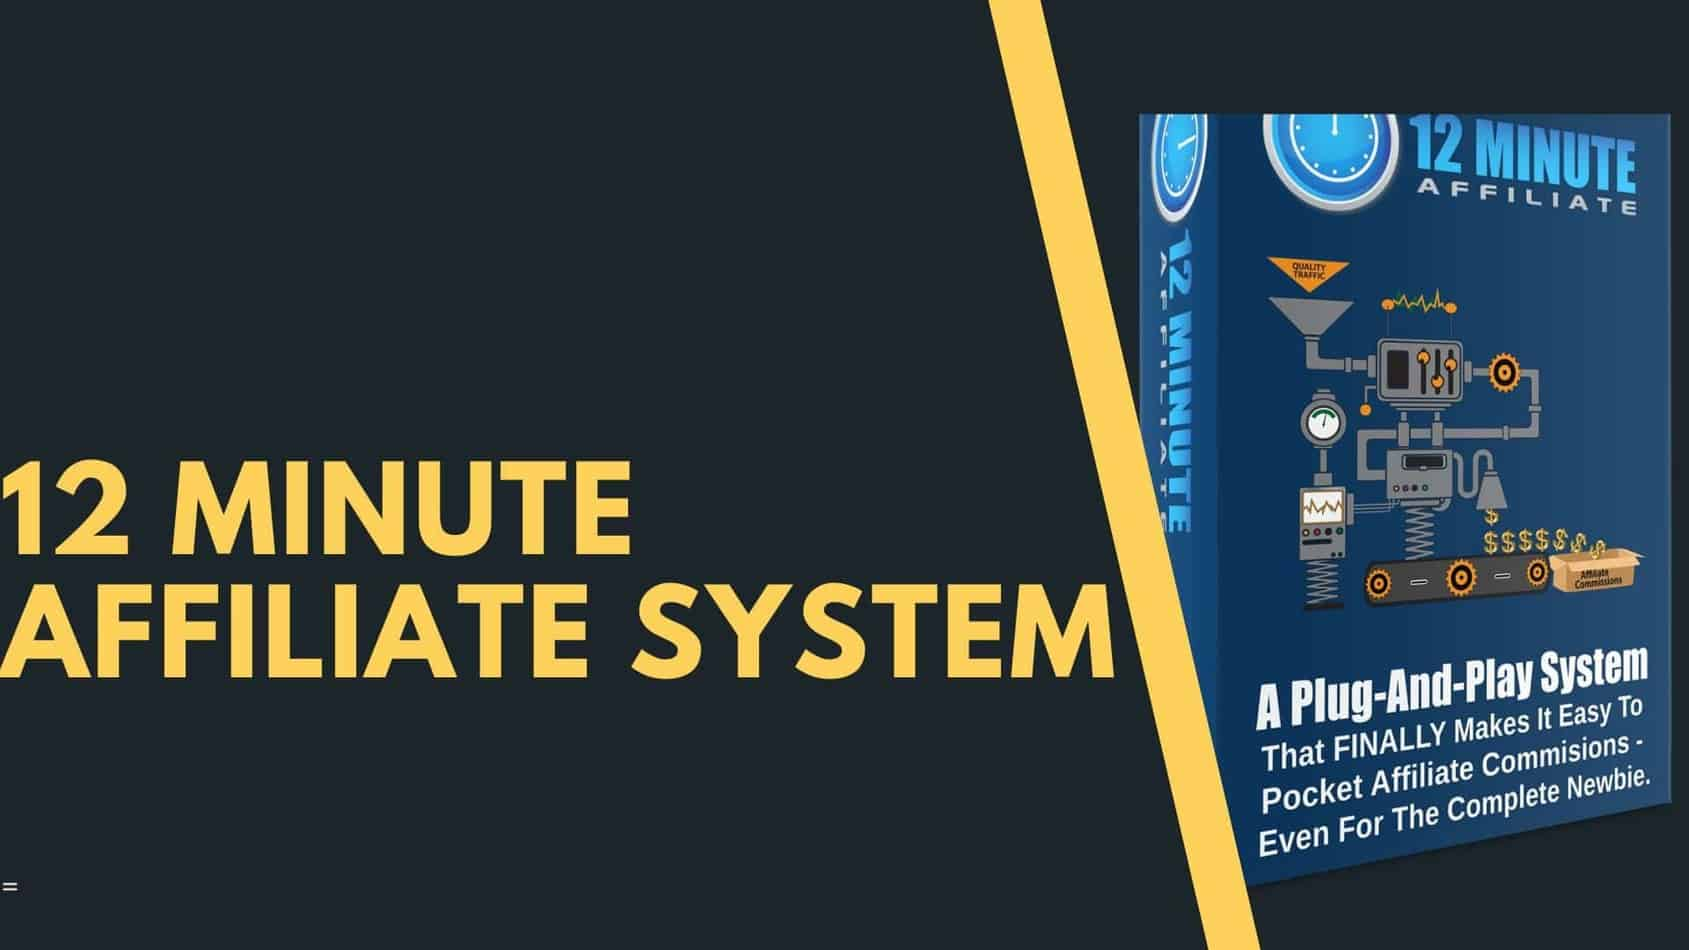 Affiliate Marketing 12 Minute Affiliate System  Promotions May